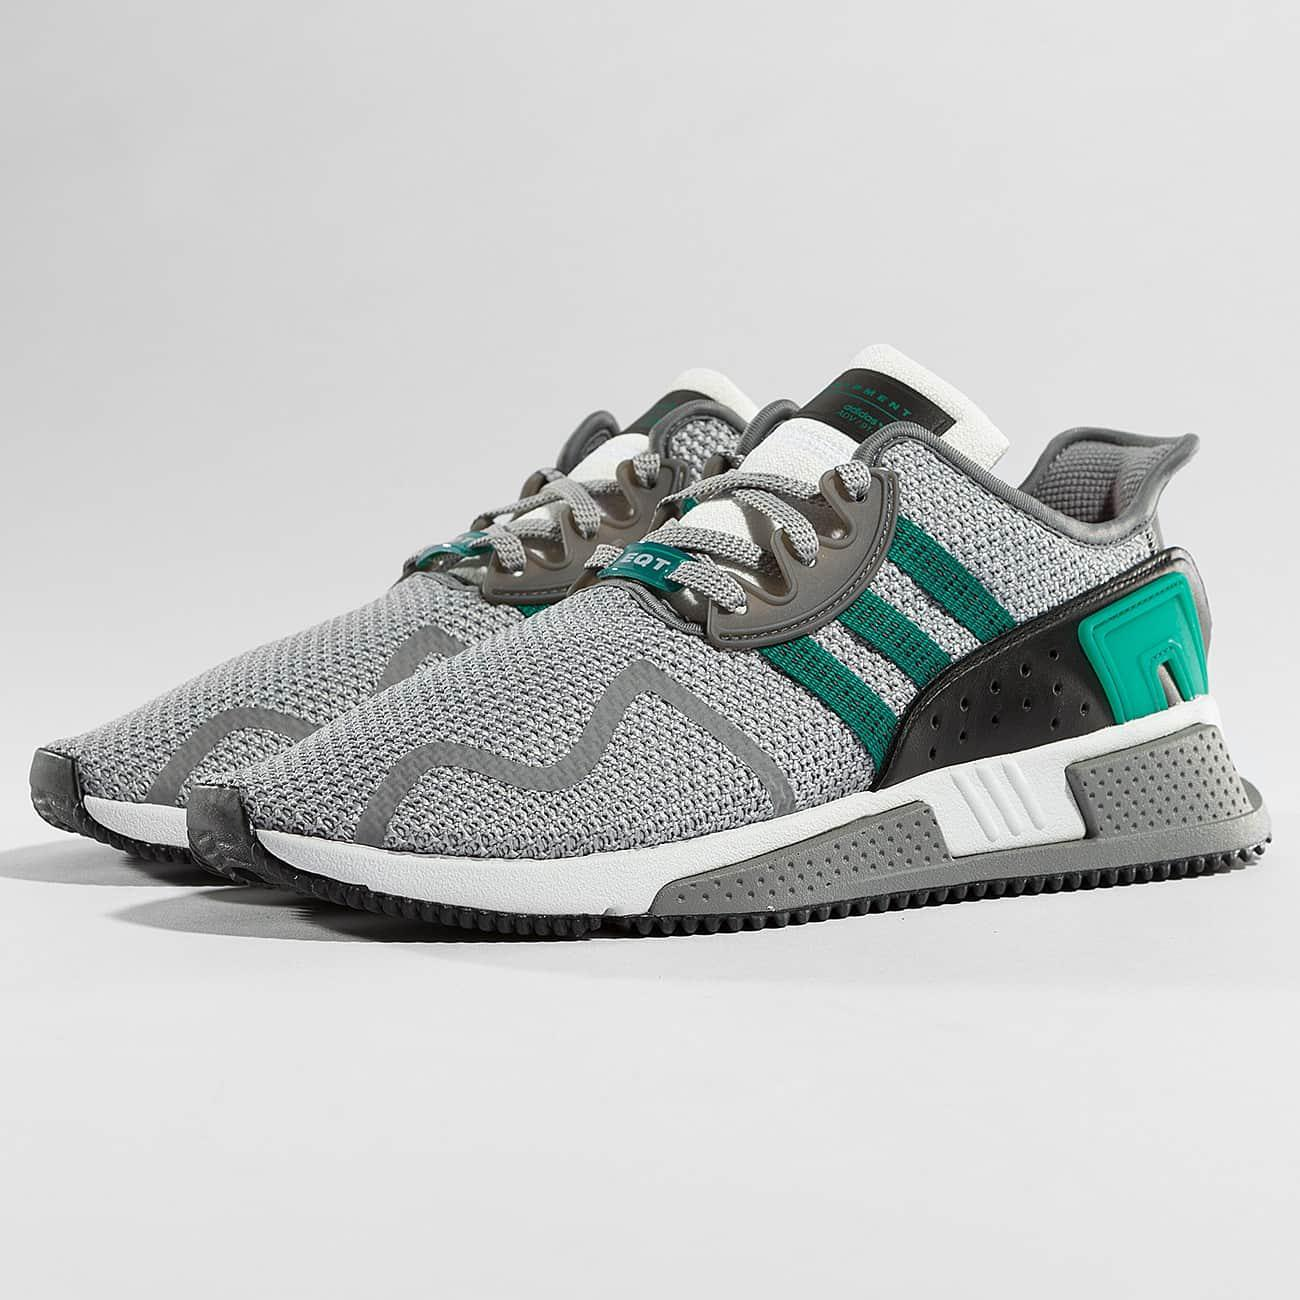 81fce38667a Lyst - Adidas Originals Sneakers Eqt Cushion Adv in Gray for Men